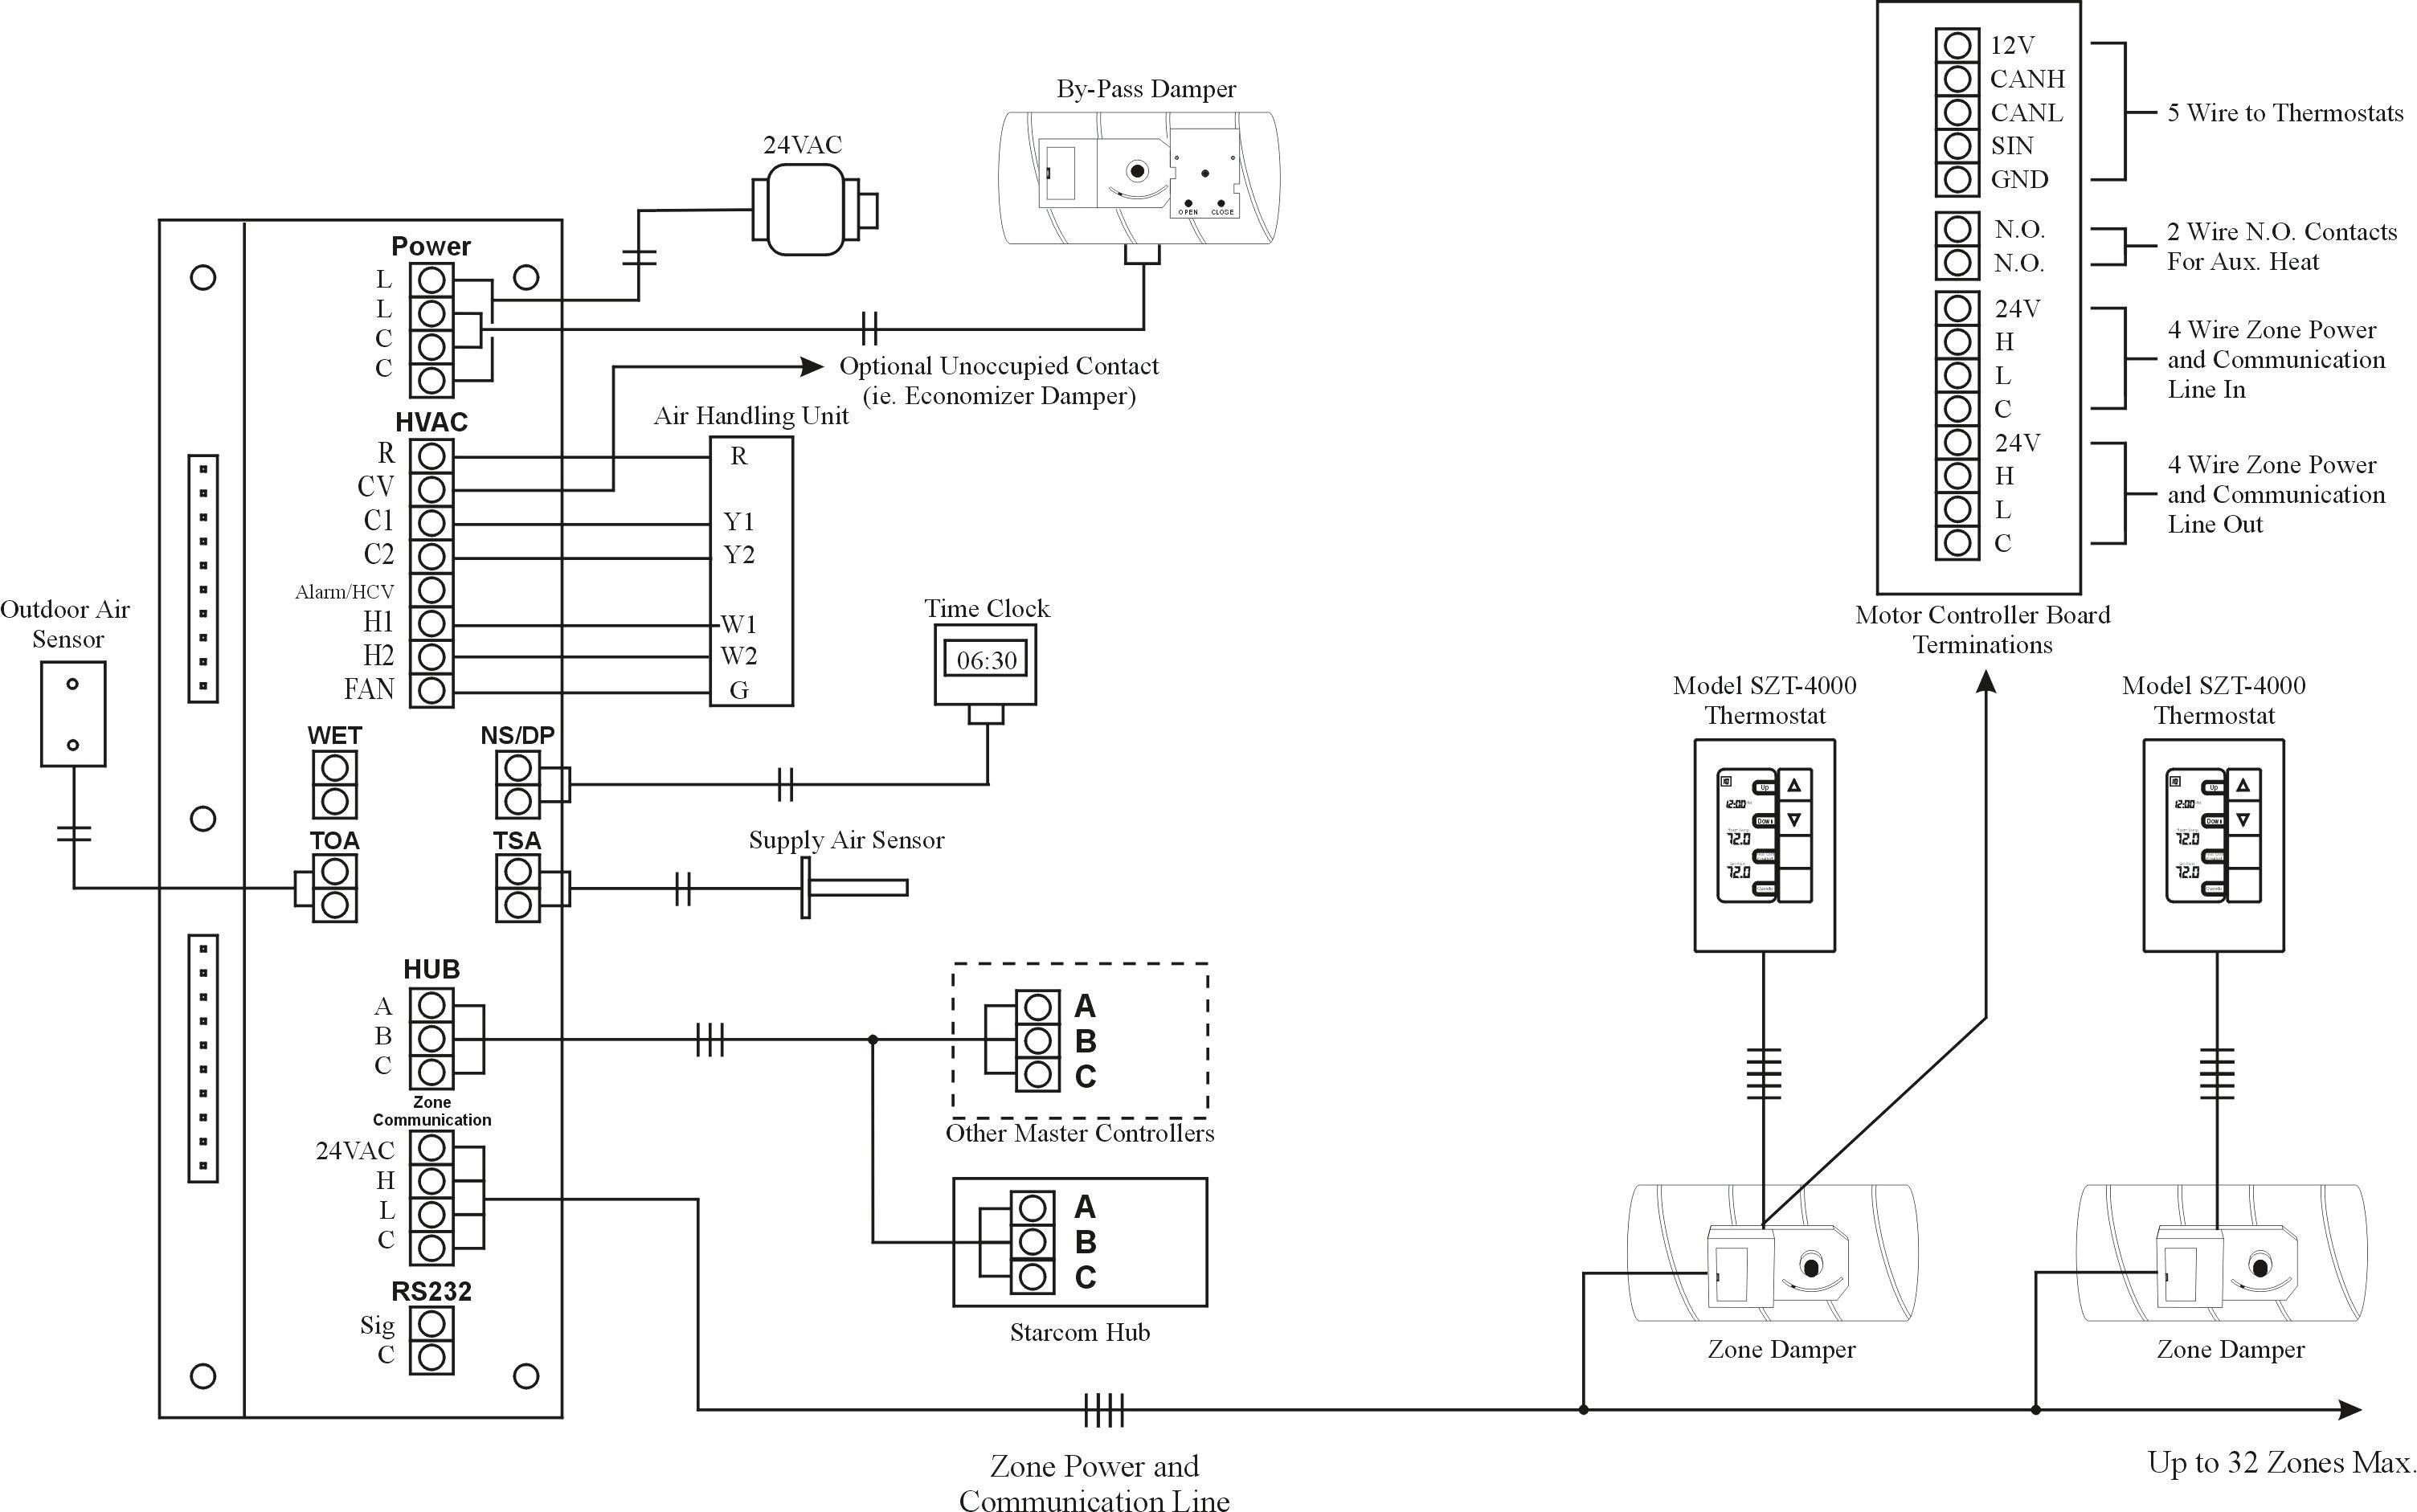 Unique Wiring Diagram for Goodman Gas Furnace #diagram #